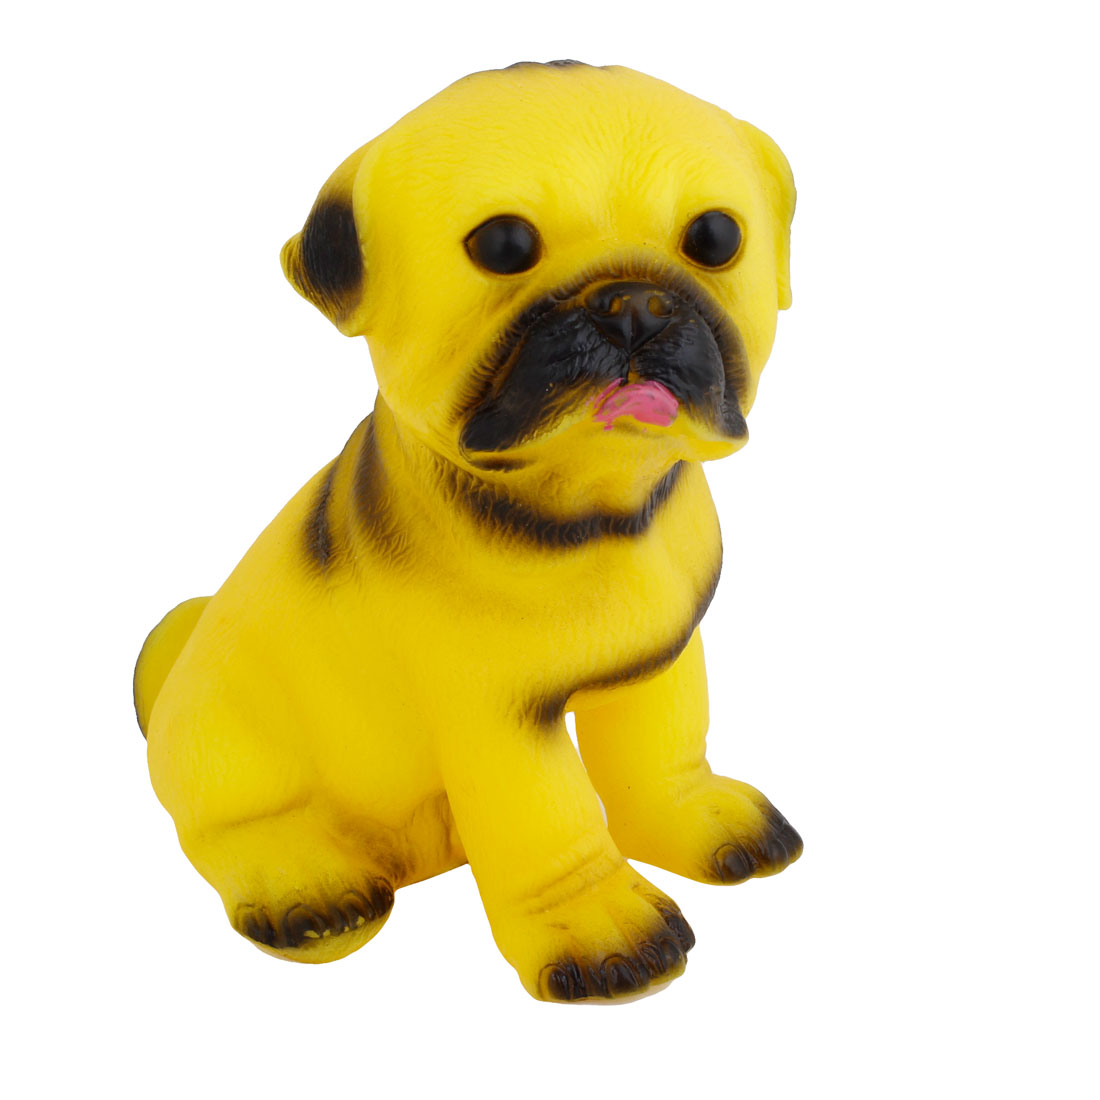 Soft Plastic Dog Shape Yellow Squeeze Squeaky Toy for Kids